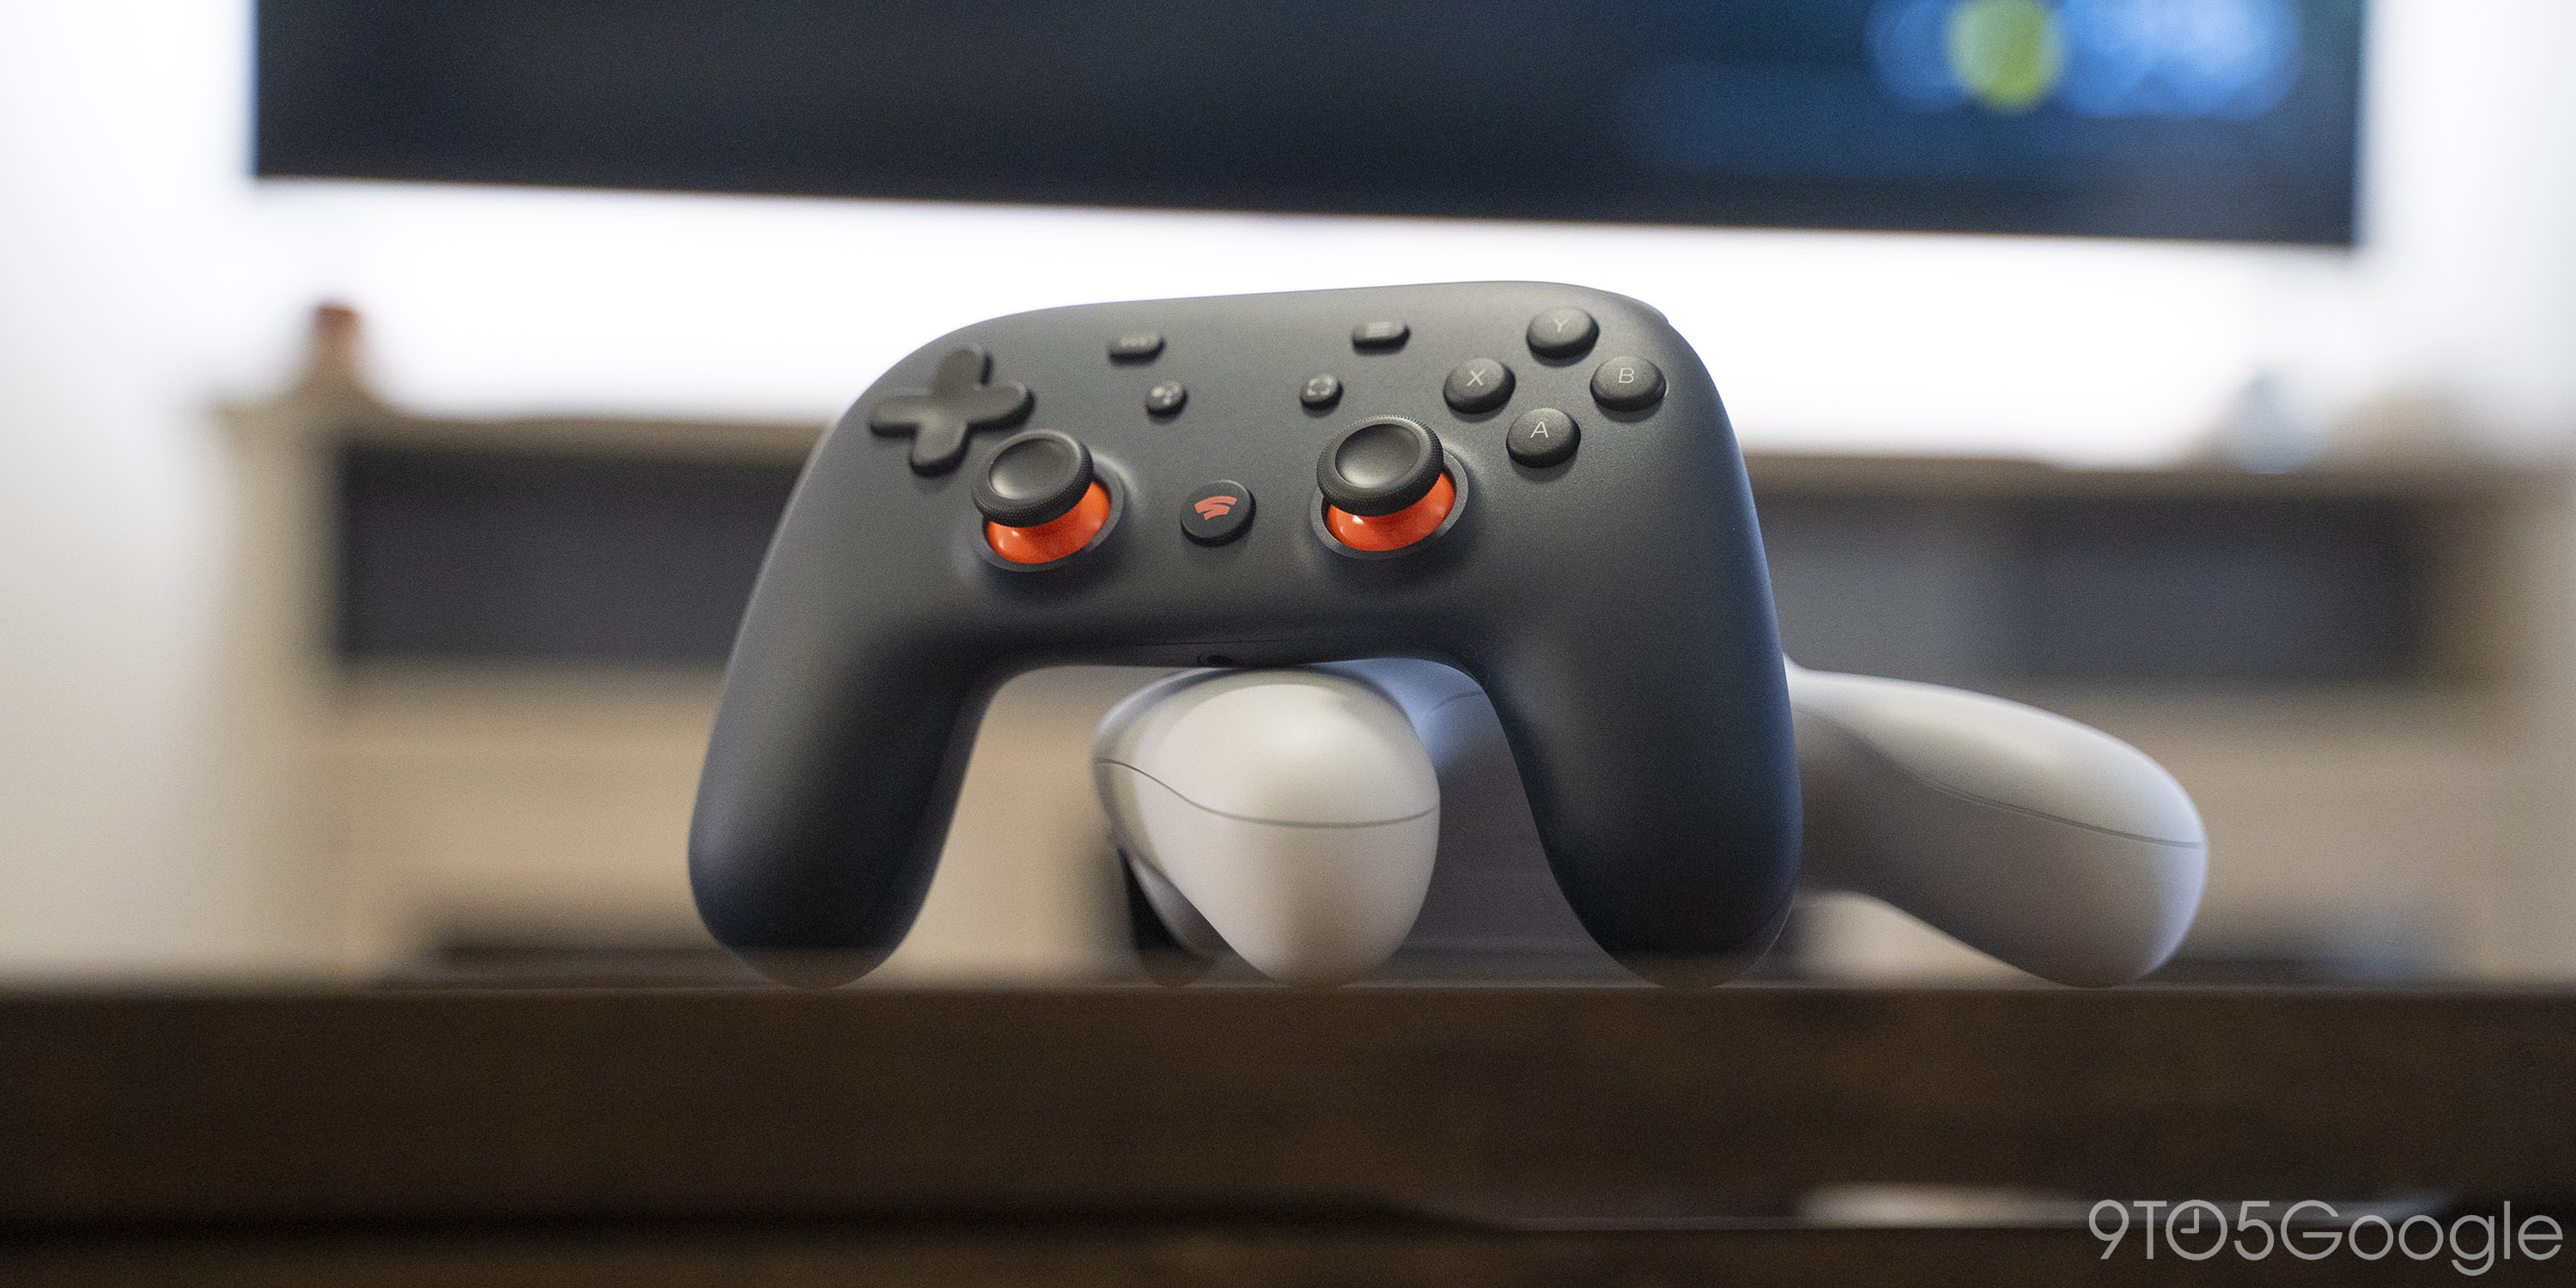 First Impressions: Stadia Works